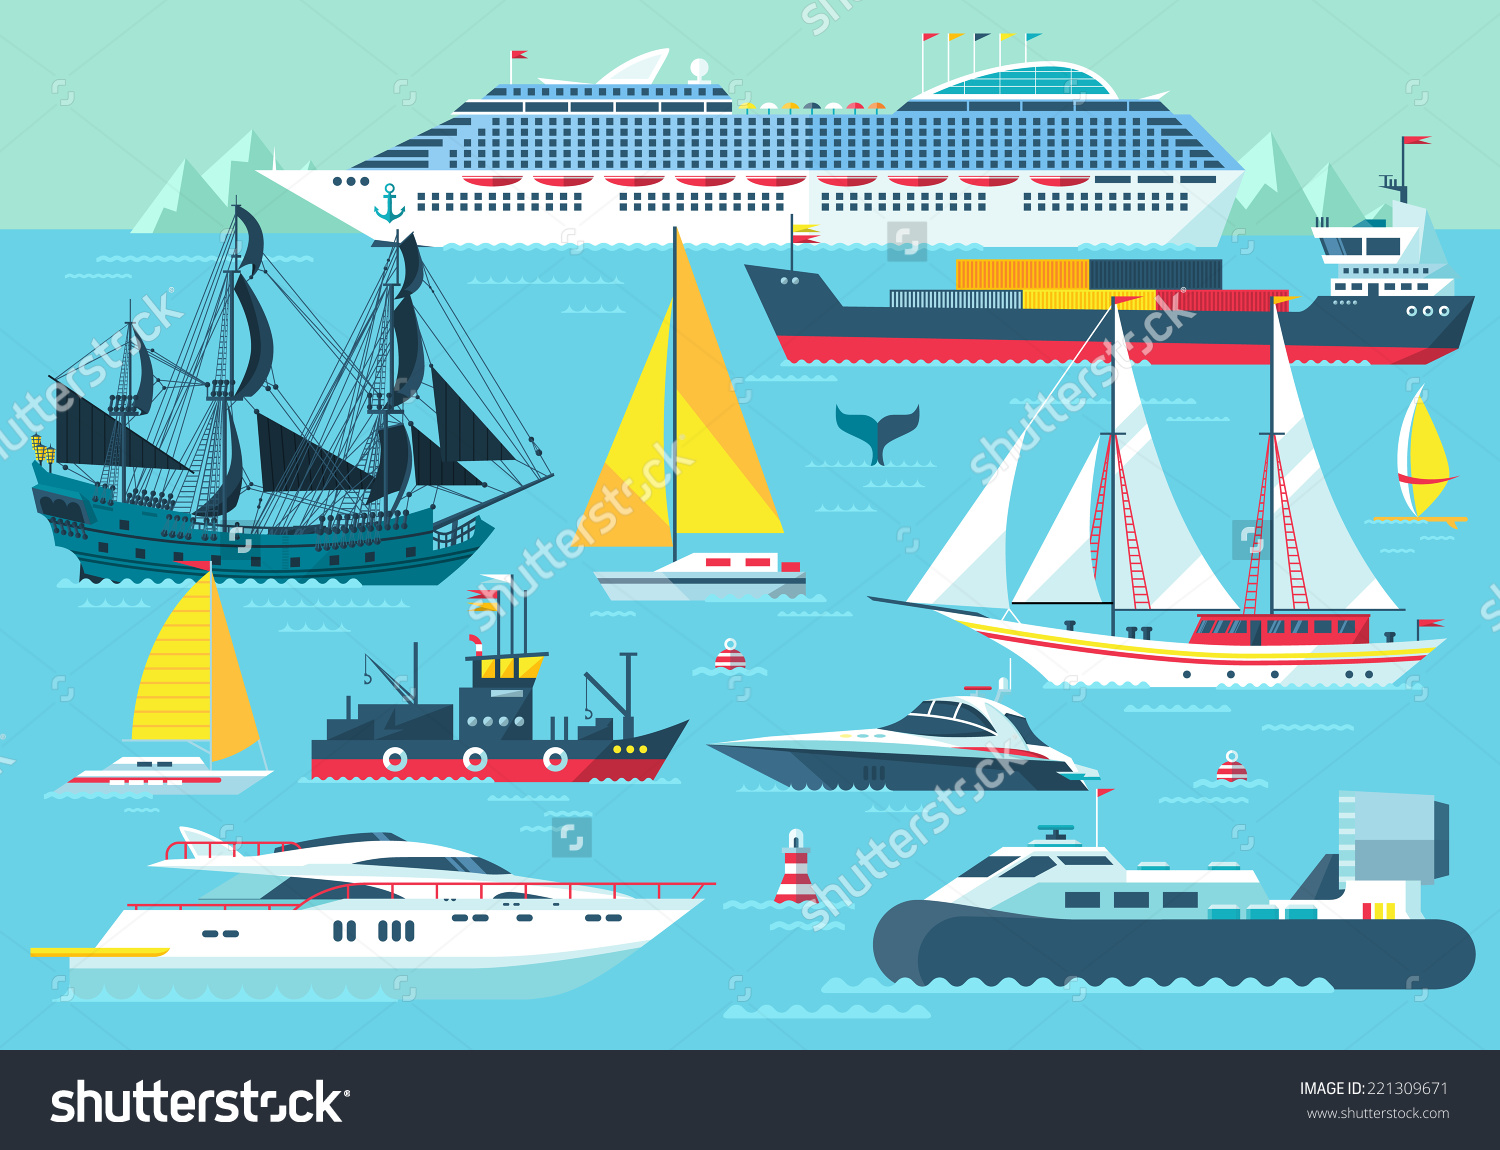 Super Set Water Carriage Maritime Transport Stock Vector 221309671.